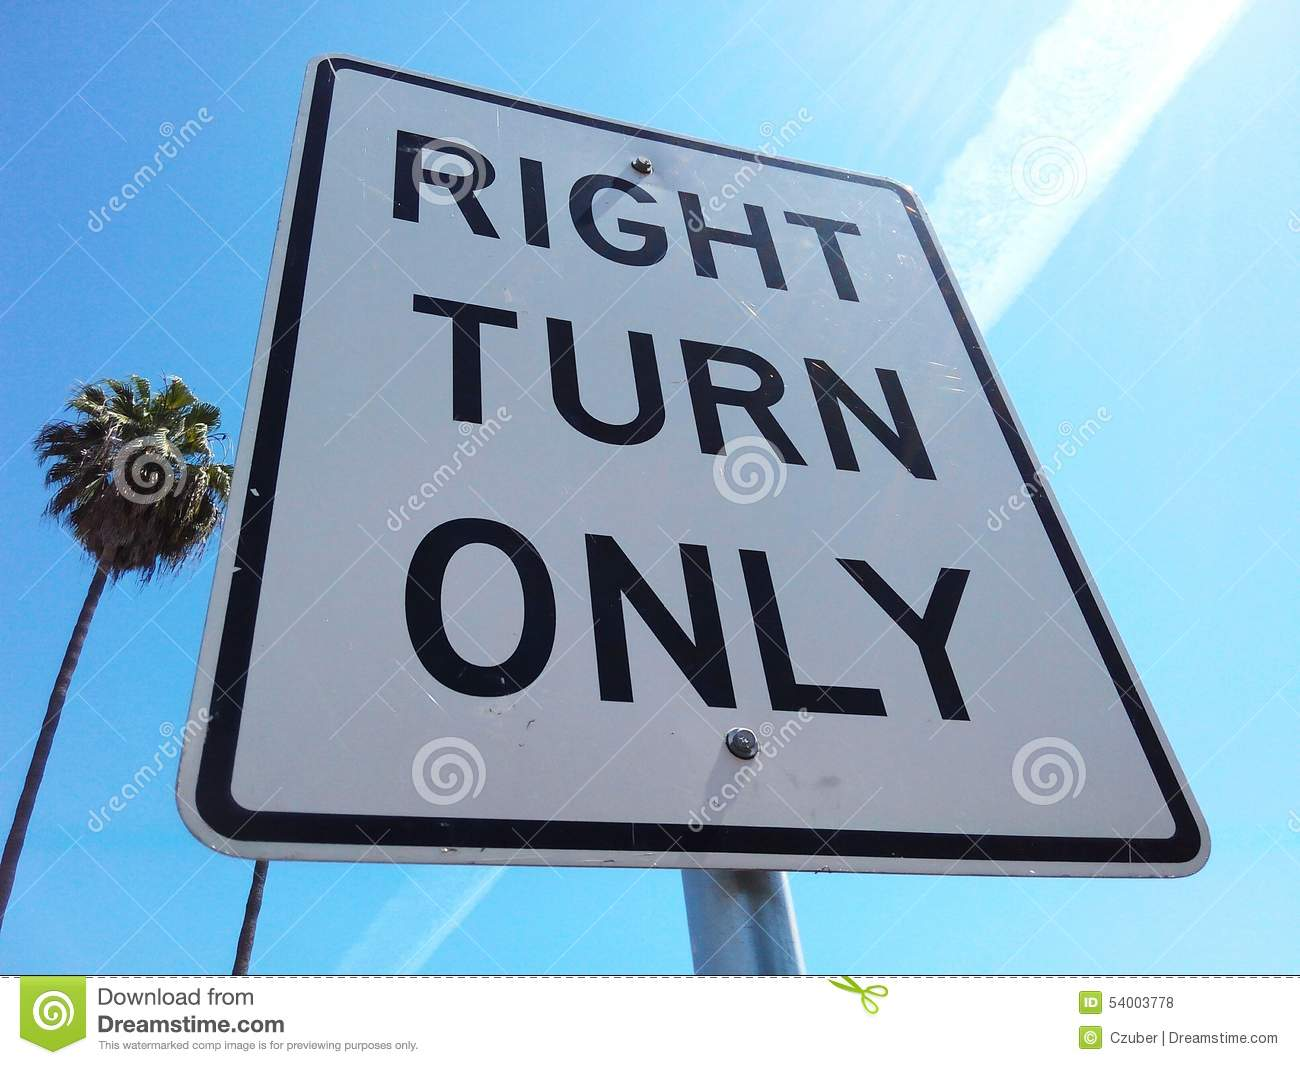 right turn only sign stock photo image 54003778